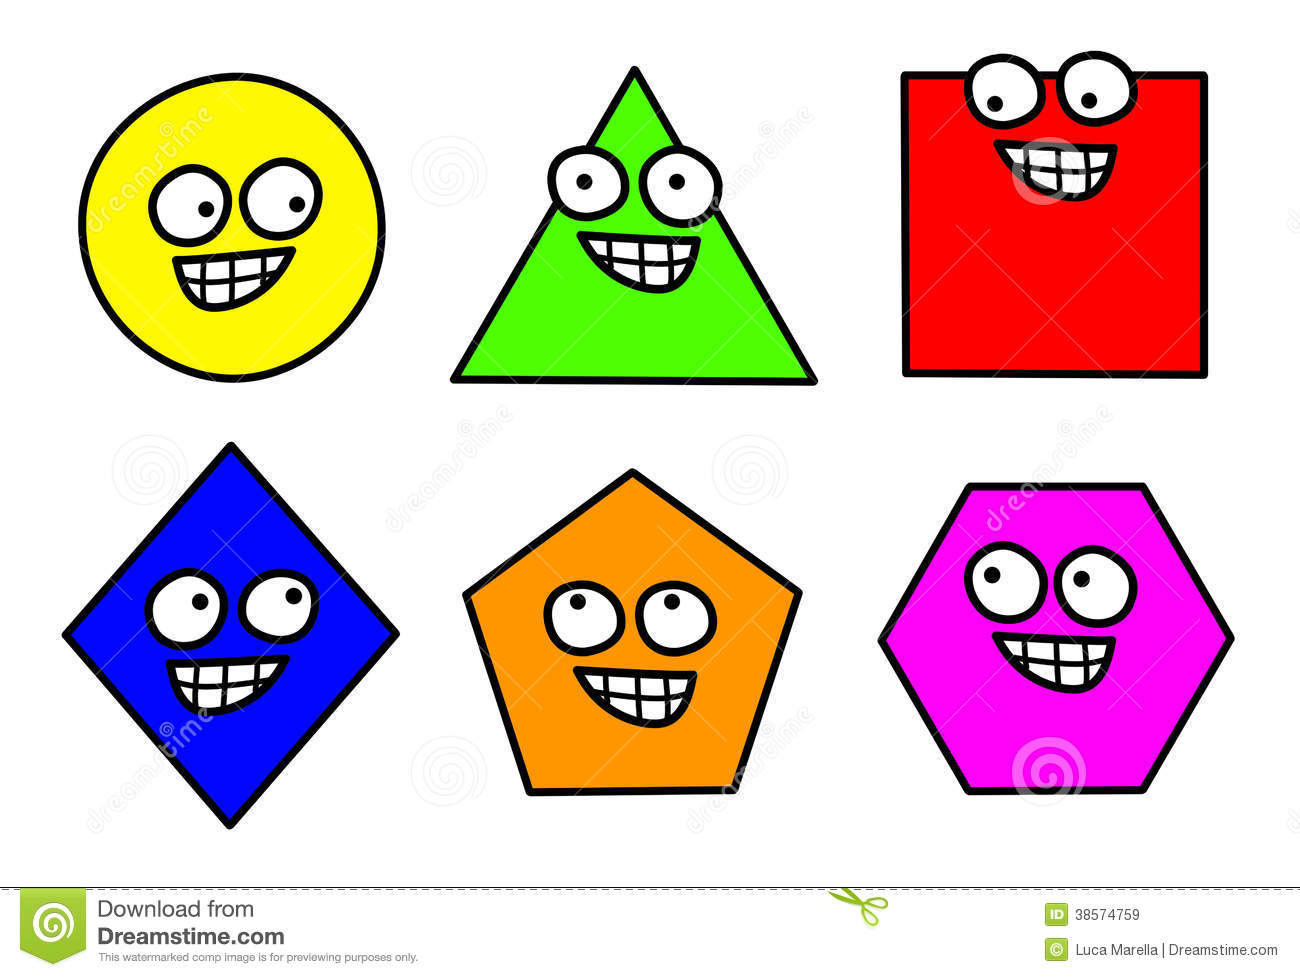 Geometry Shapes Clipart Royalty Free Stock Images - Image: 38574759